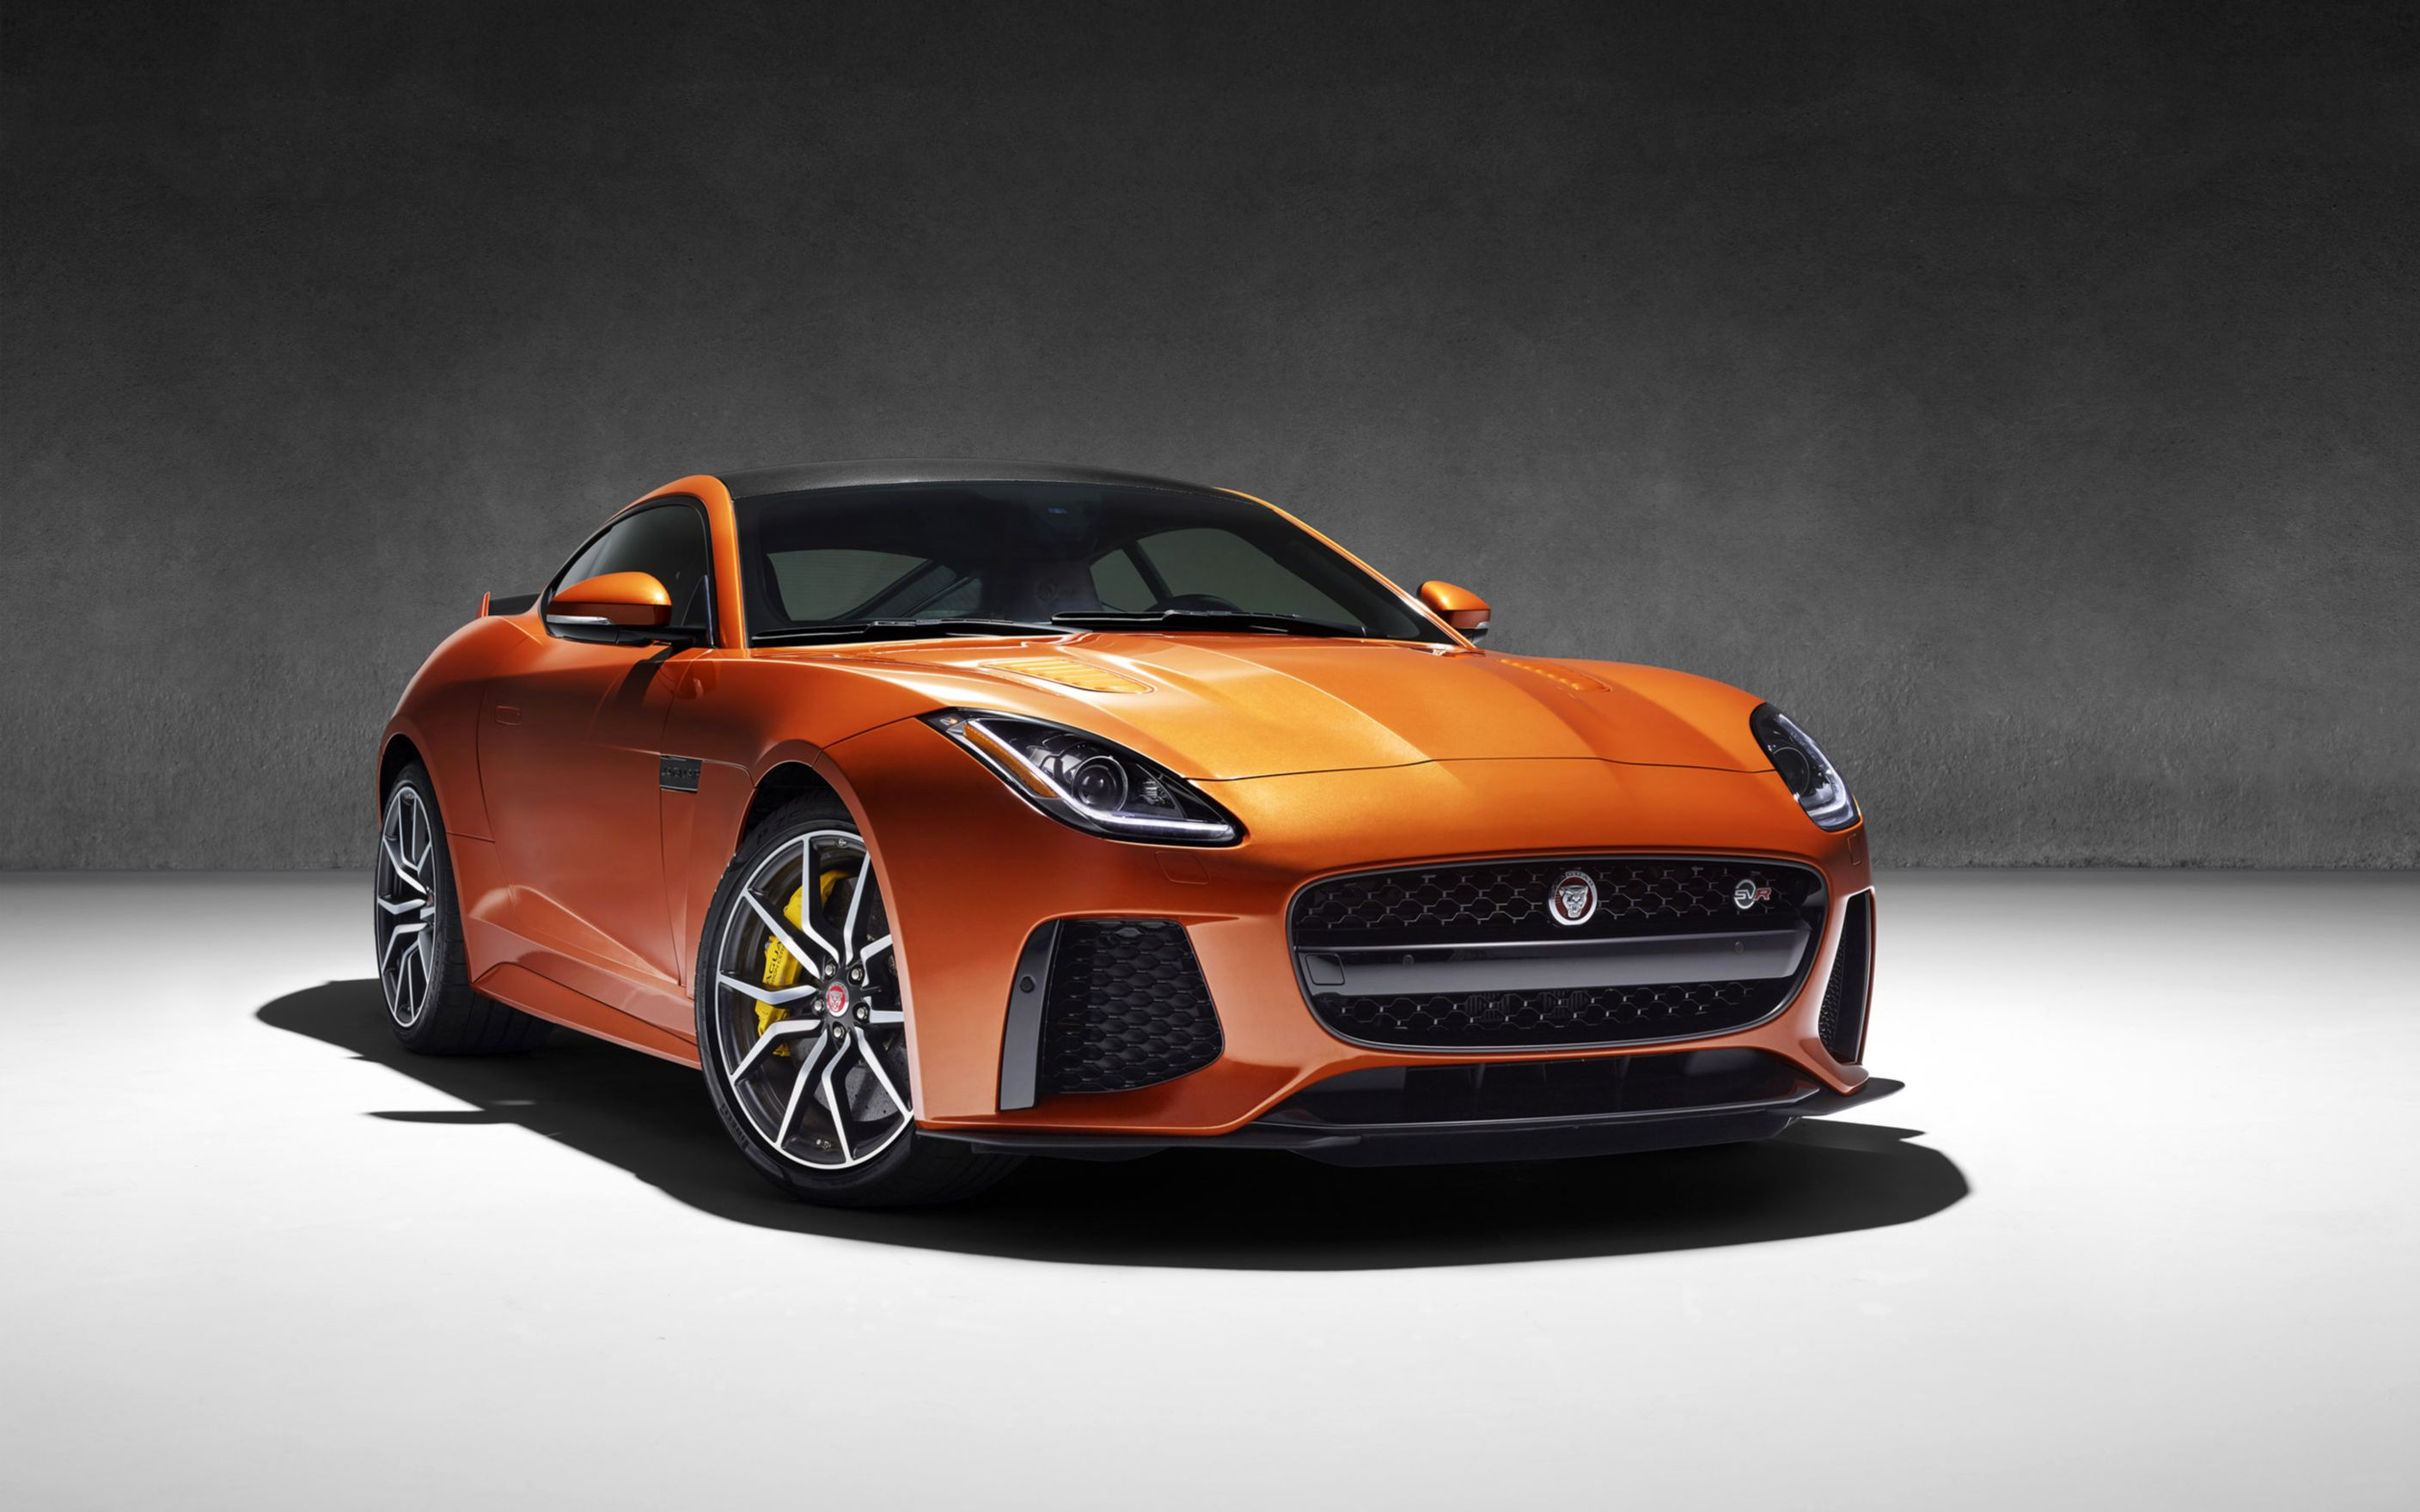 2017 jaguar f type svr wide wallpaper: desktop hd wallpaper